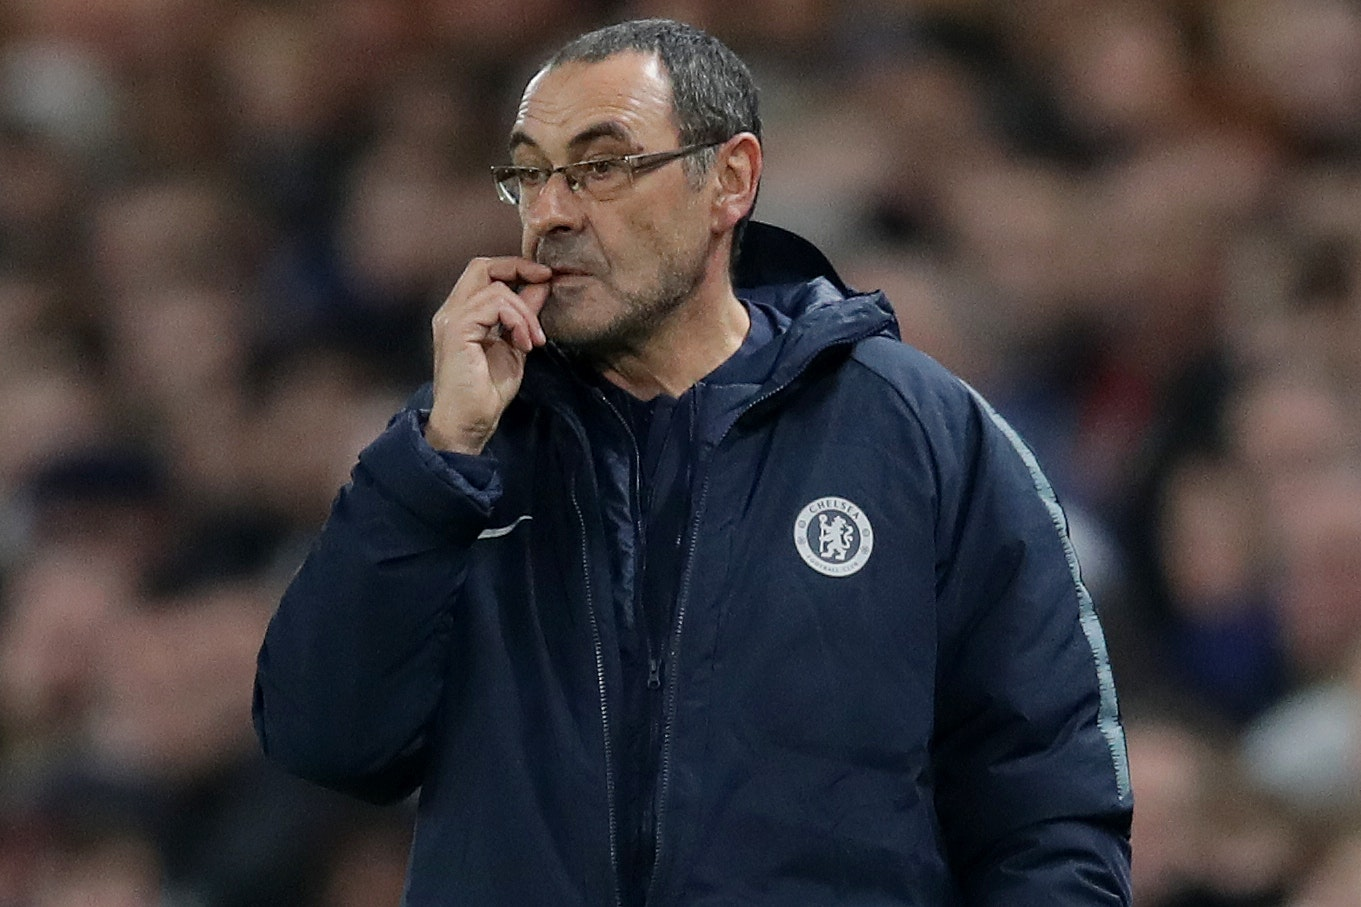 Maurizio Sarri guided Chelsea into the last 16 of the Europa League